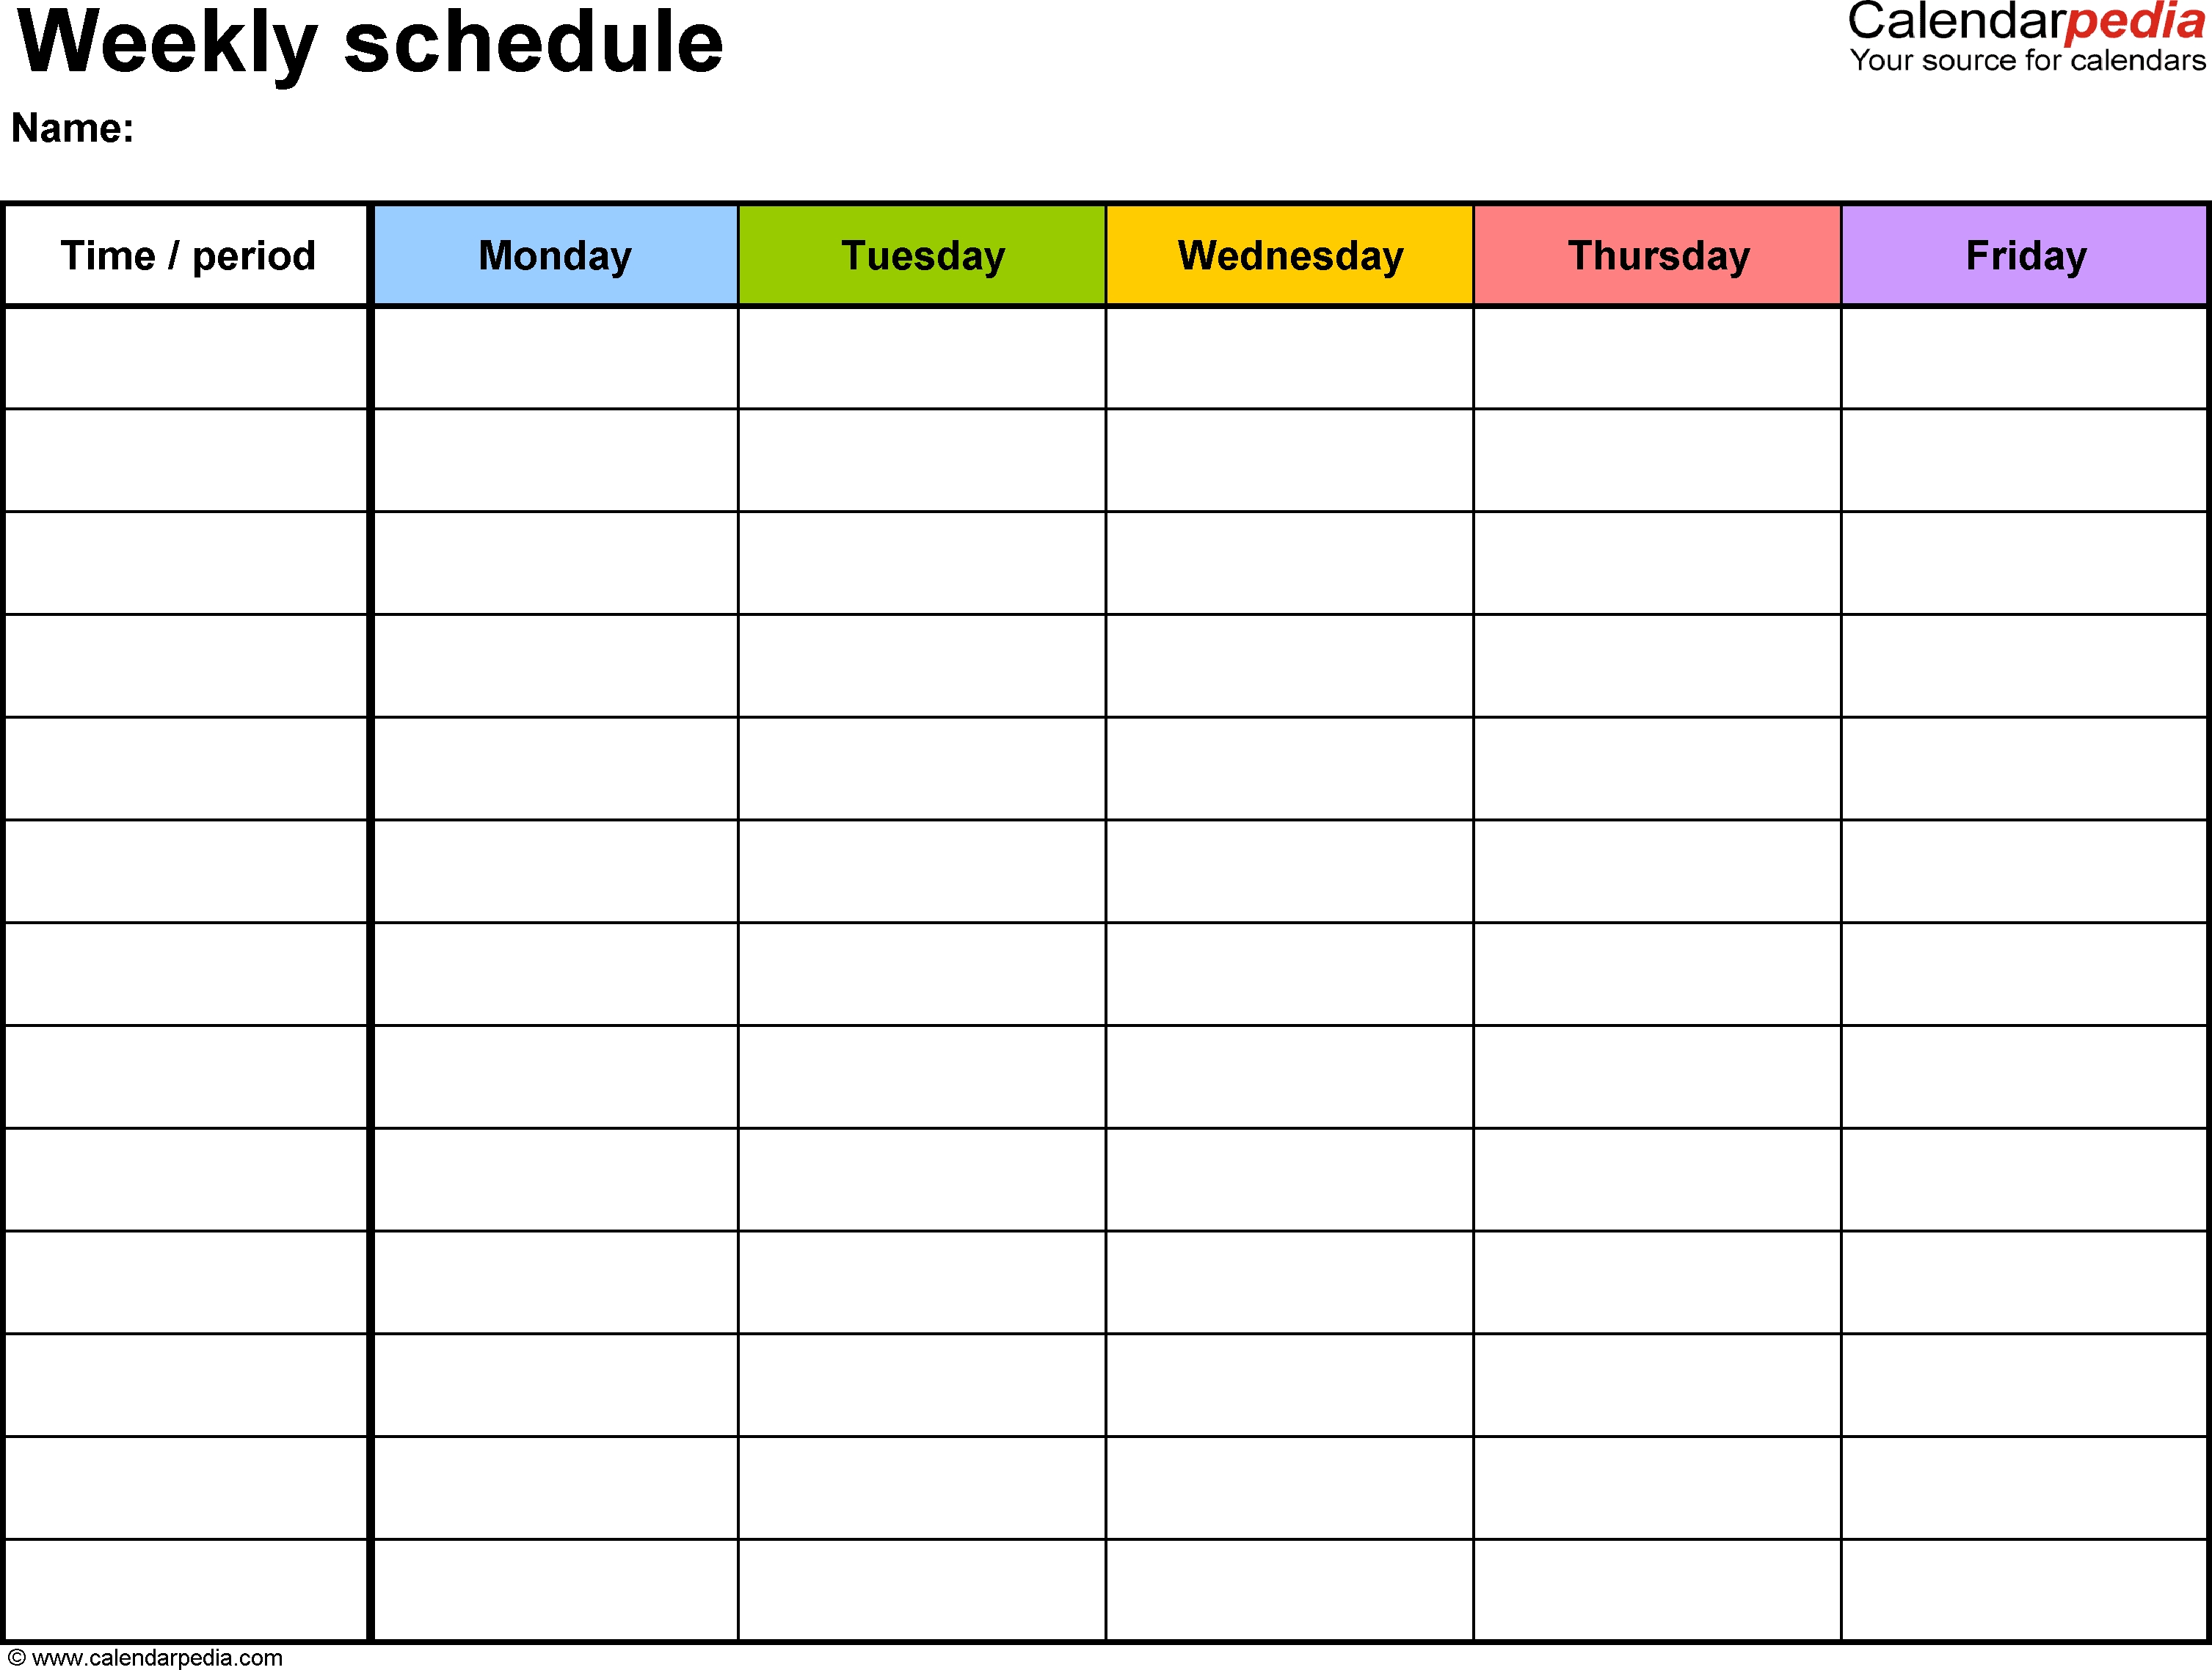 Weekly Schedule Template For Word Version 1: Landscape, 1 Page  Printable Monthly Organiser Pages Monday To Sunday